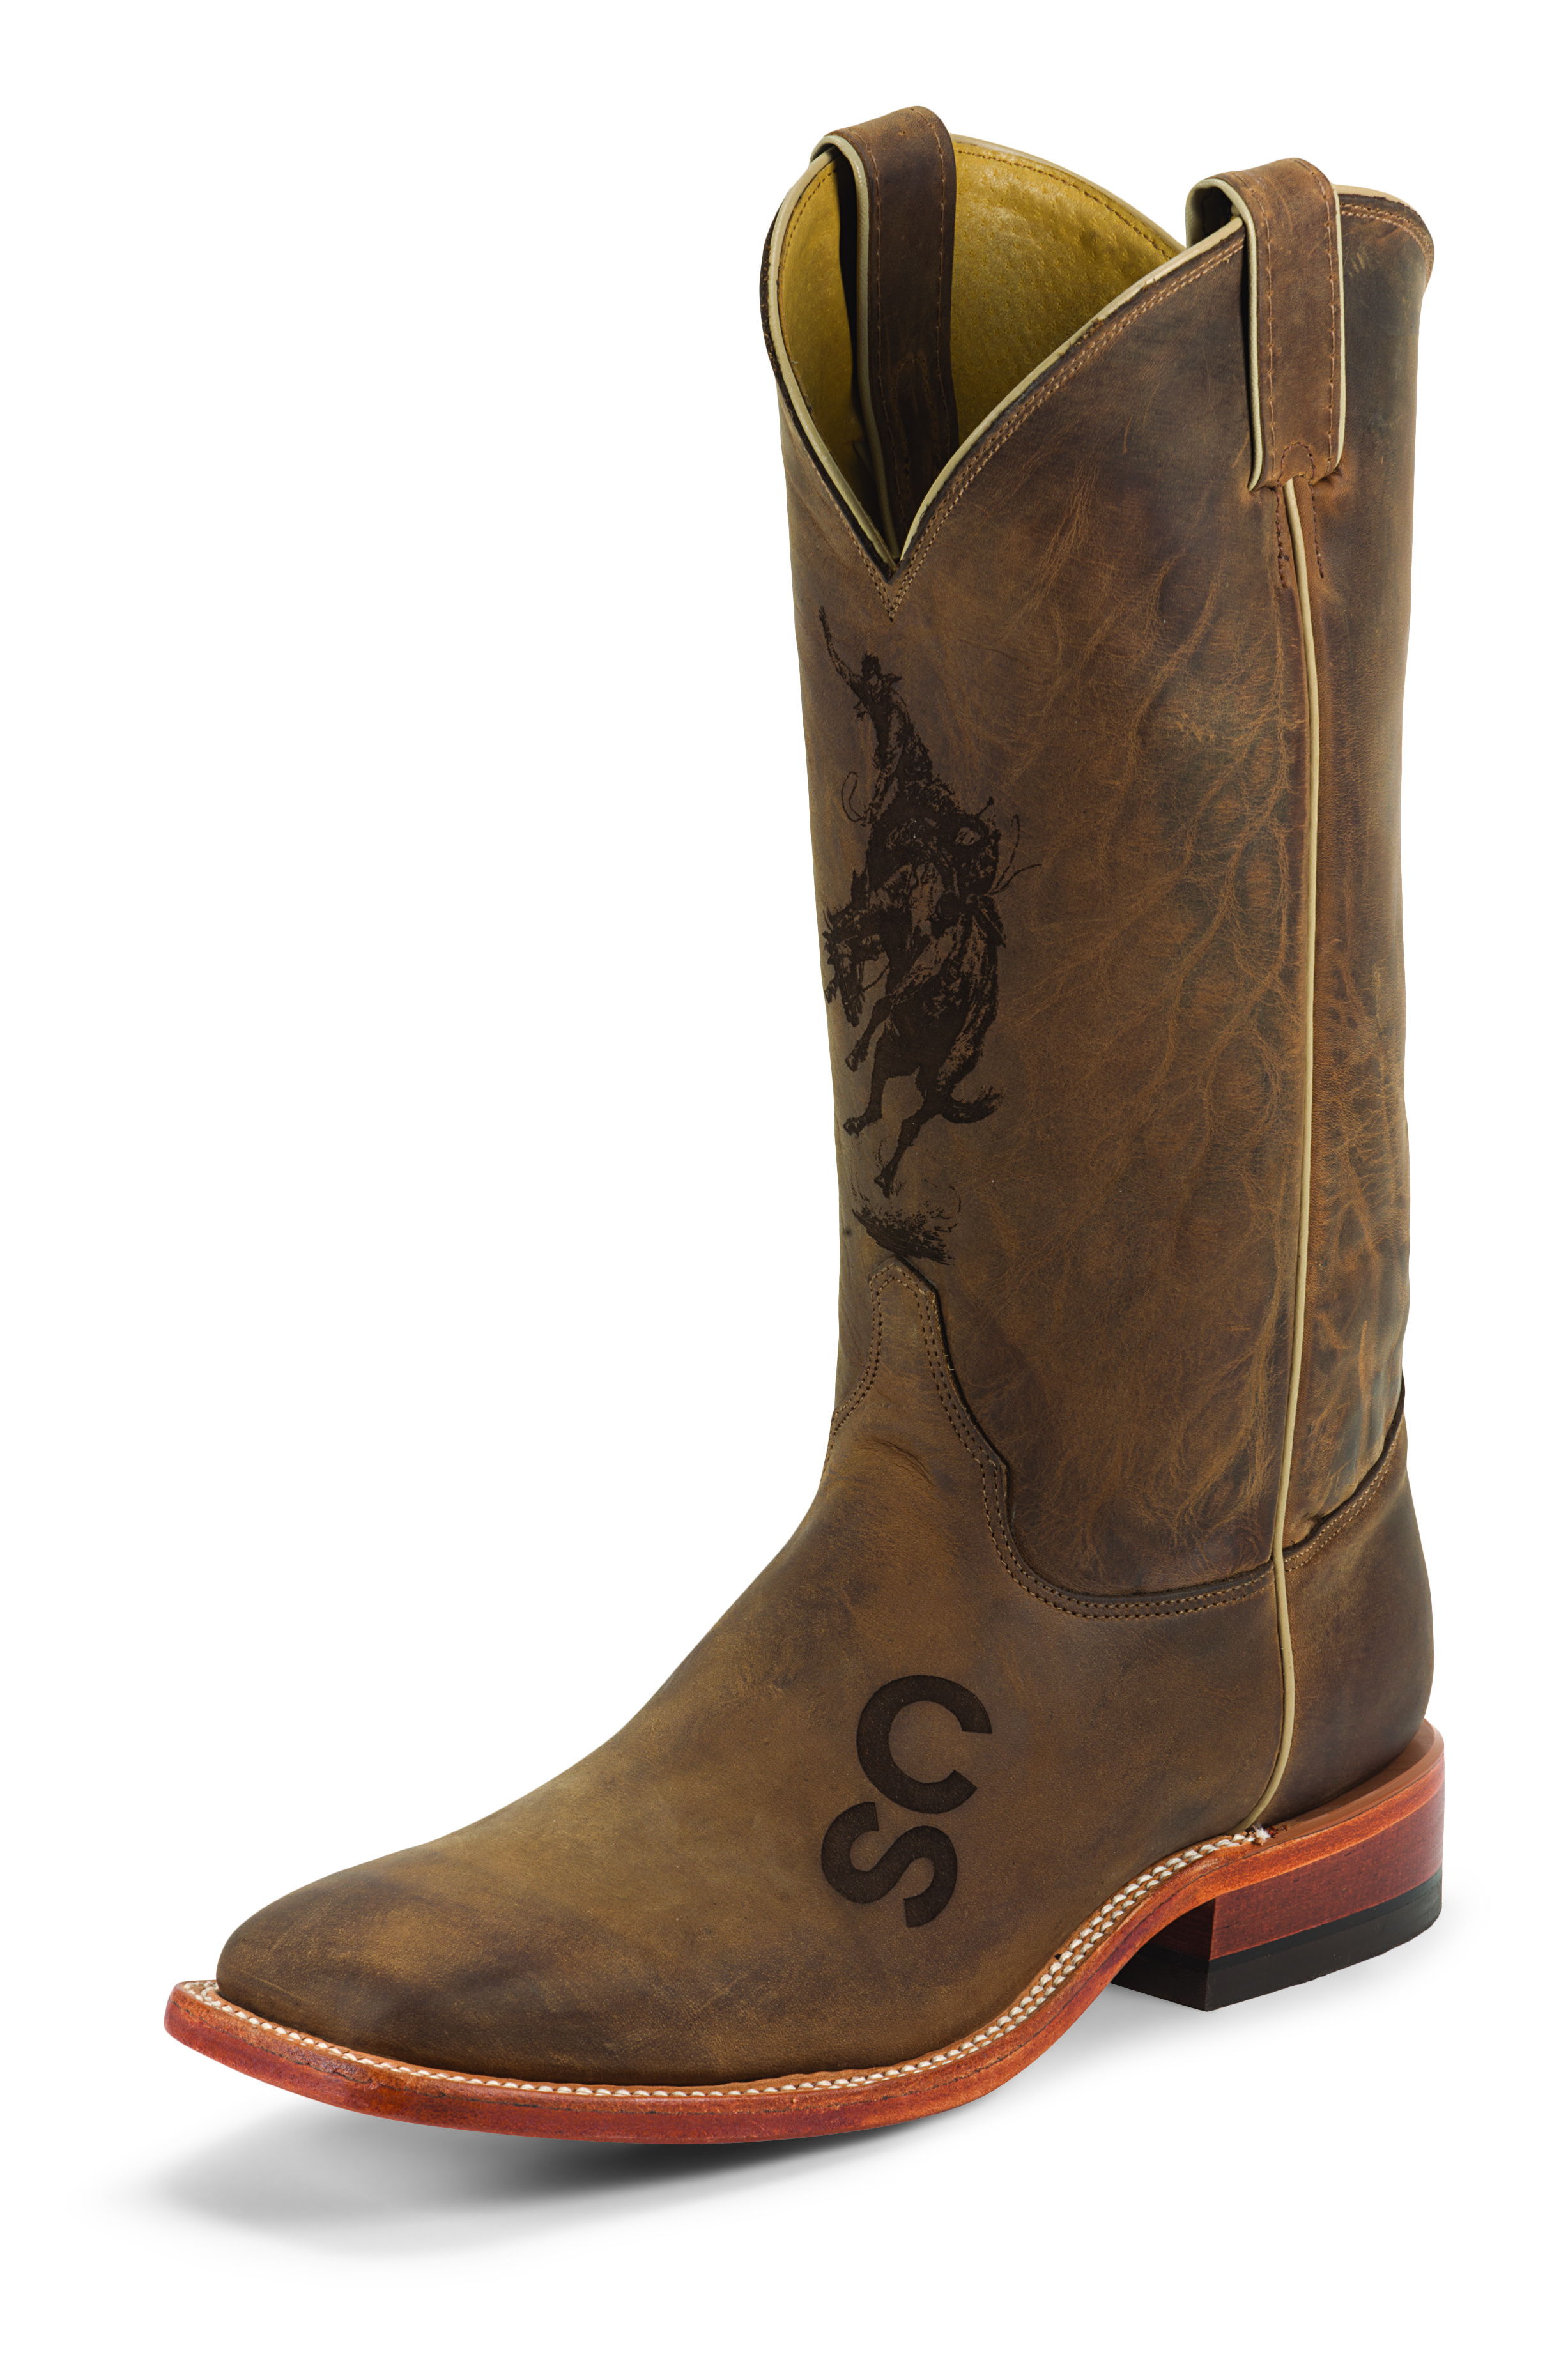 Justin Boots Celebrates The Centennial Cashmere Amp Camo